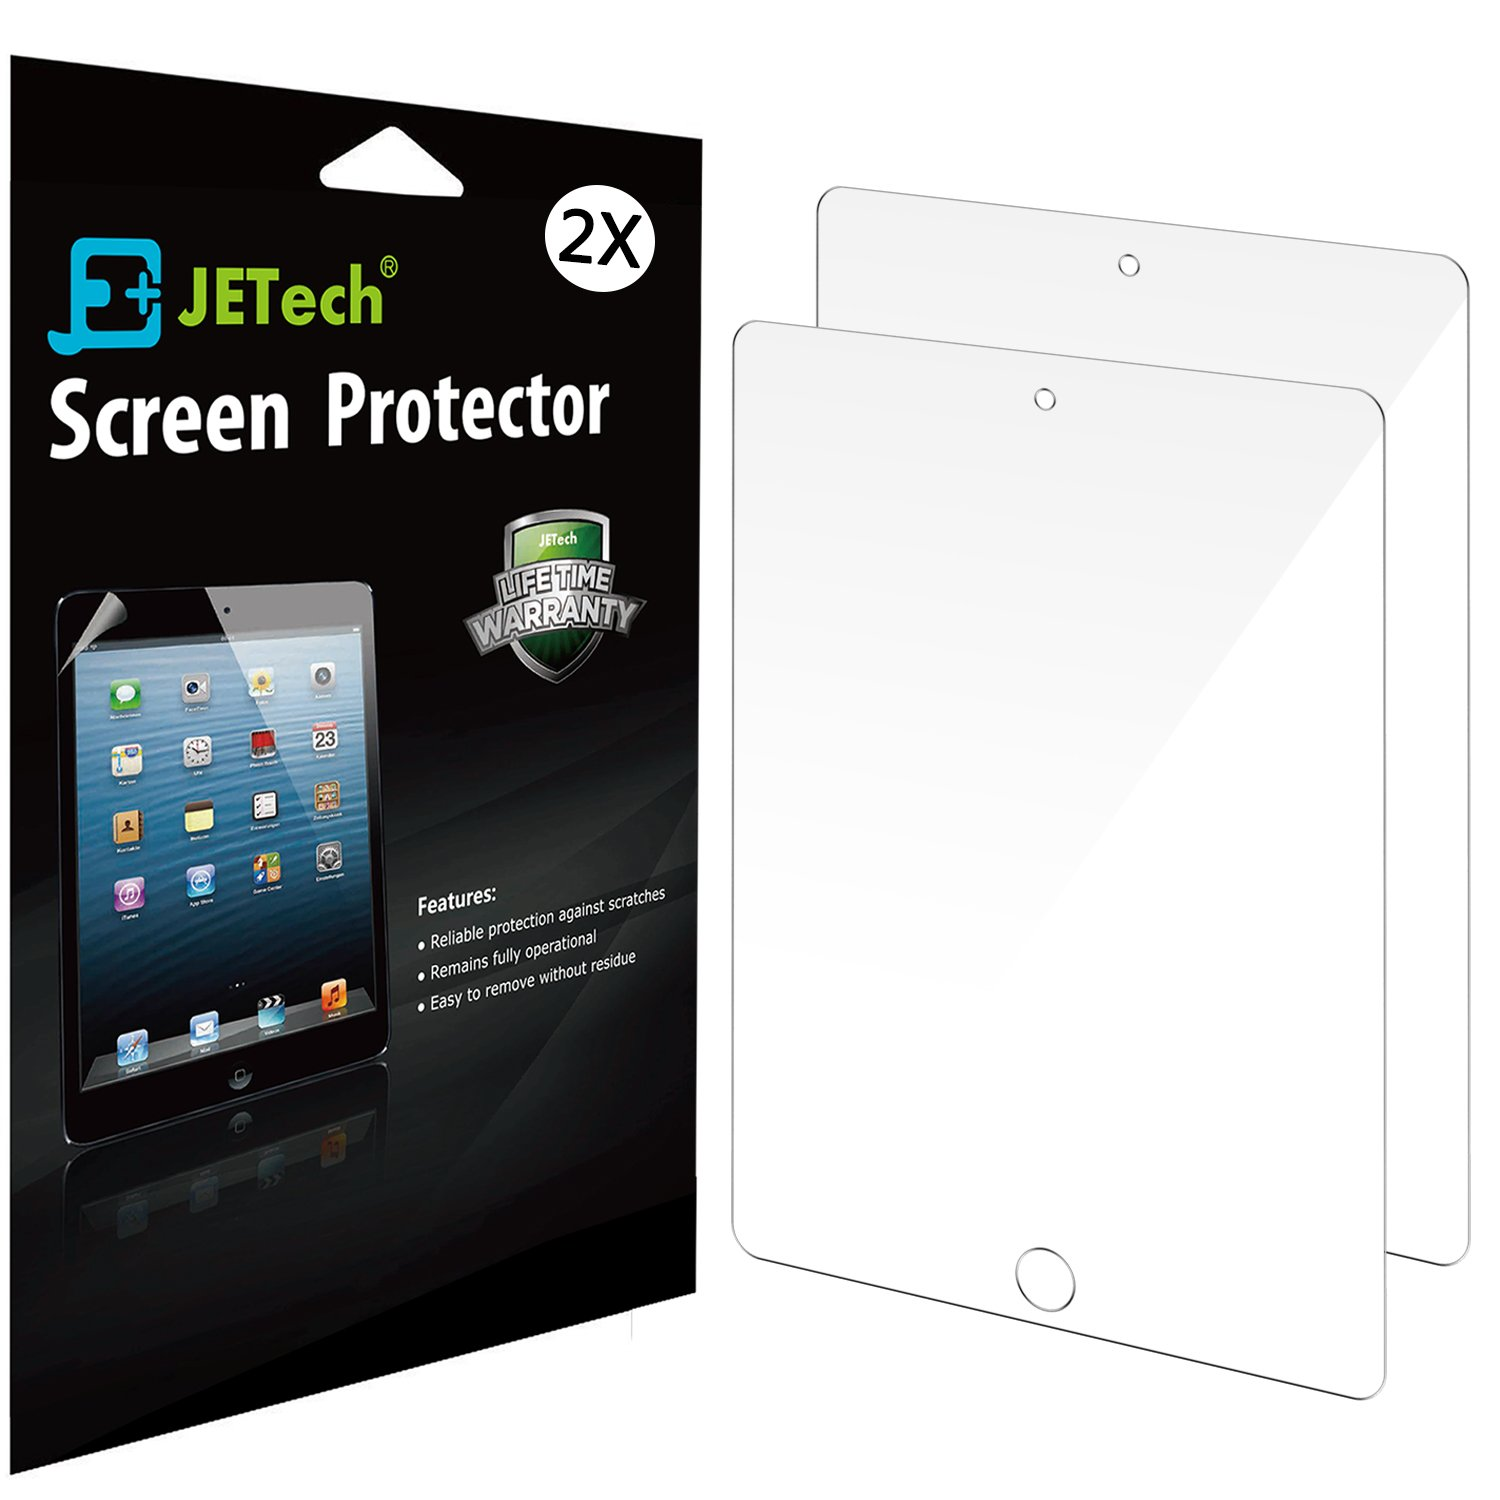 Ipad Screen Protector Jetech 2-Pack Screen Protector Film For Apple Ipad 2/3/.. 8